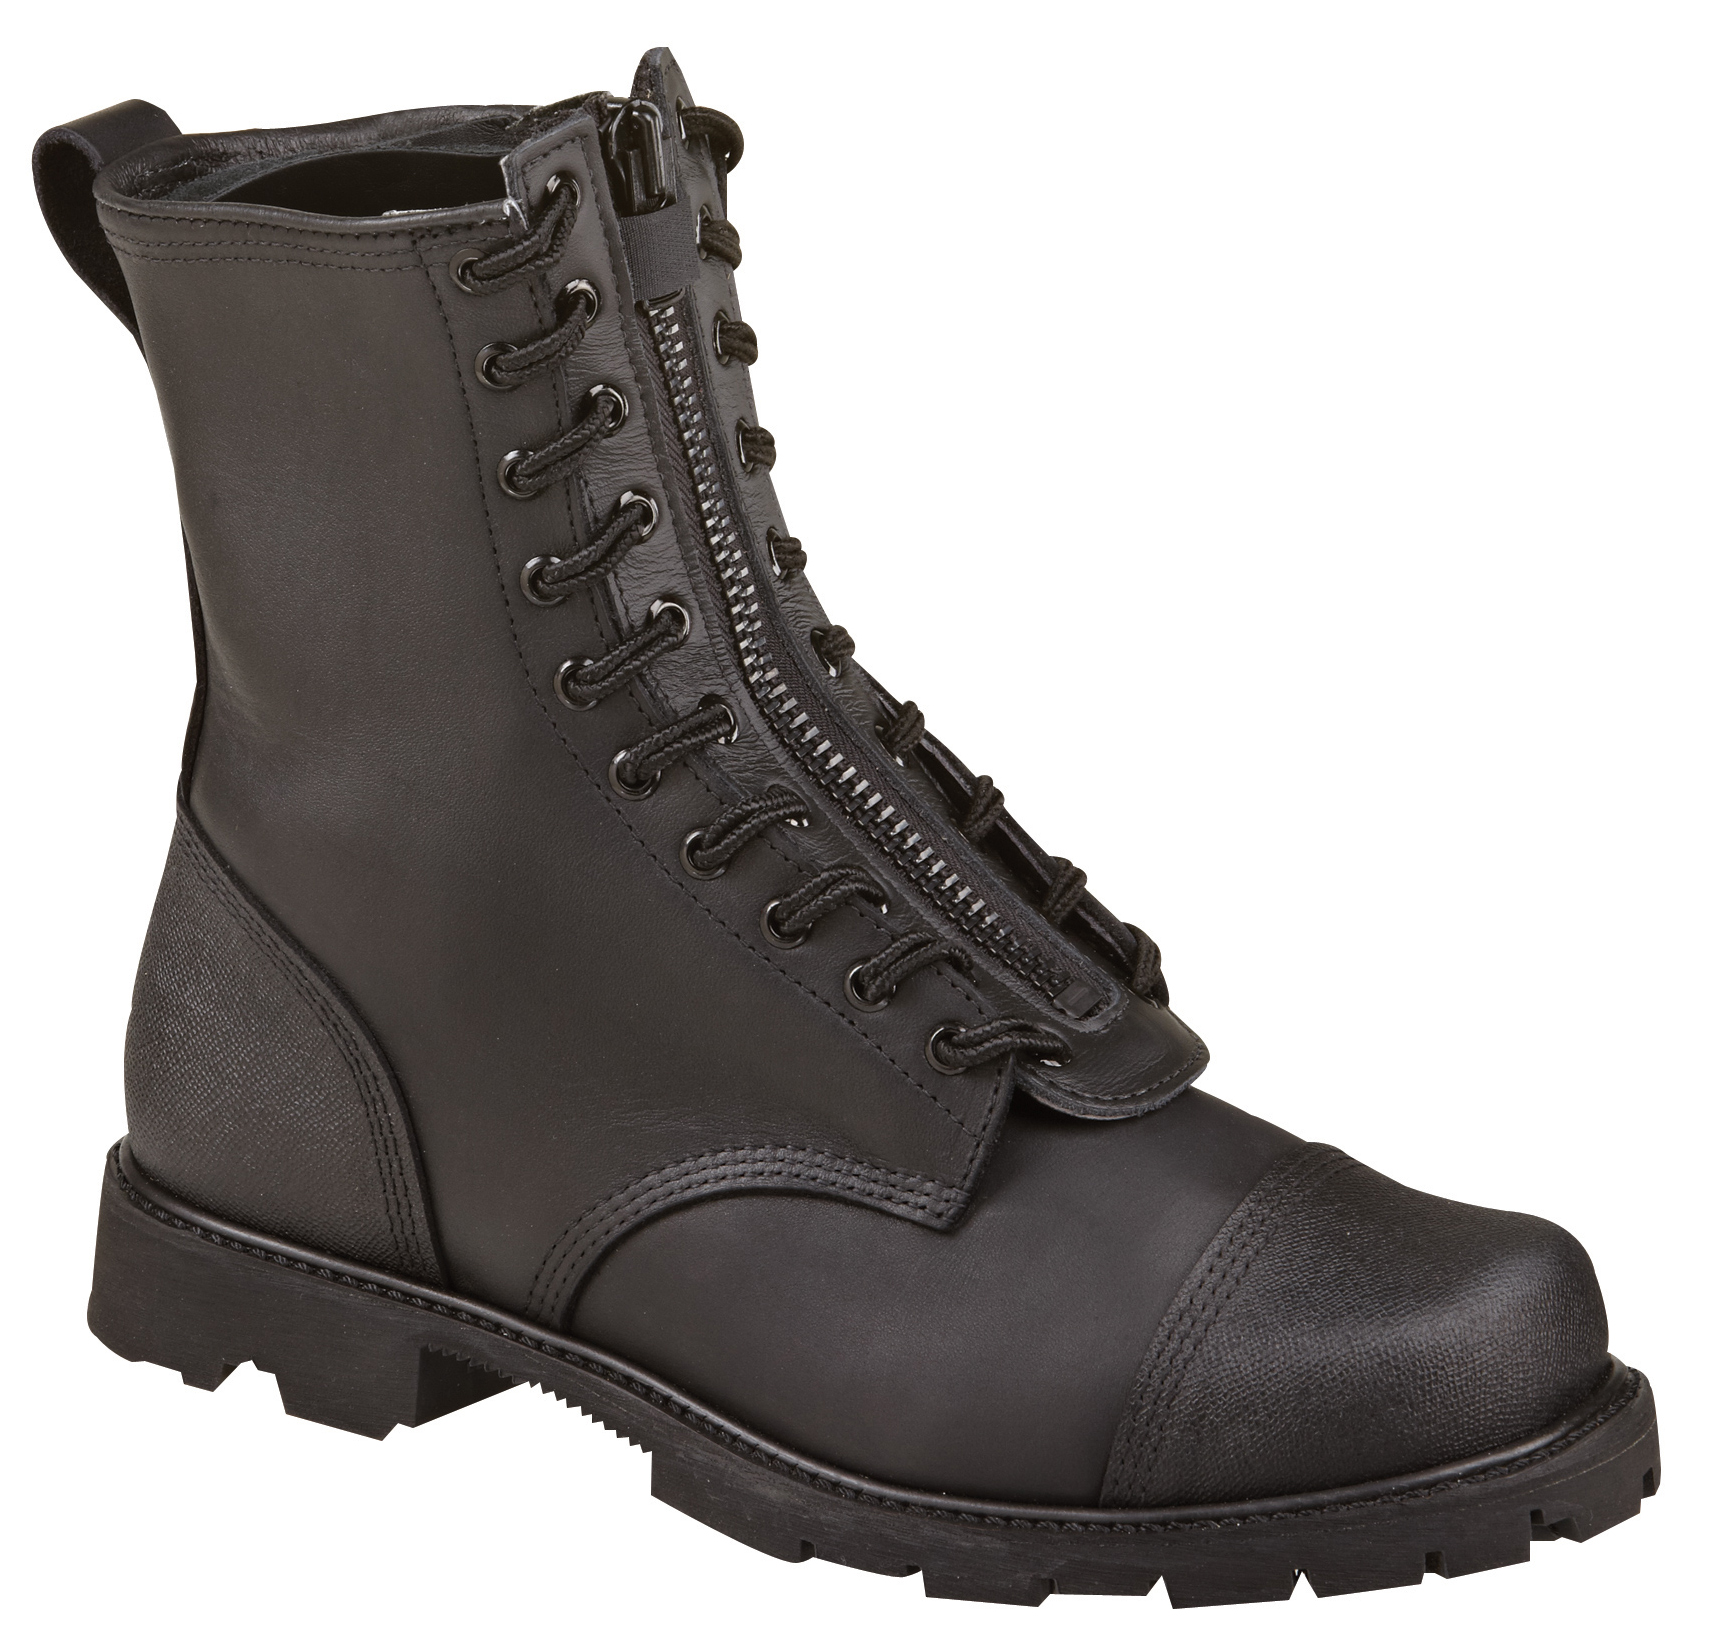 "Thorogood Men's Thorogood 10"" Wildland Fire Boots With Removable Zipper Black Leather Medium (D, M) 834-6373 at Sears.com"